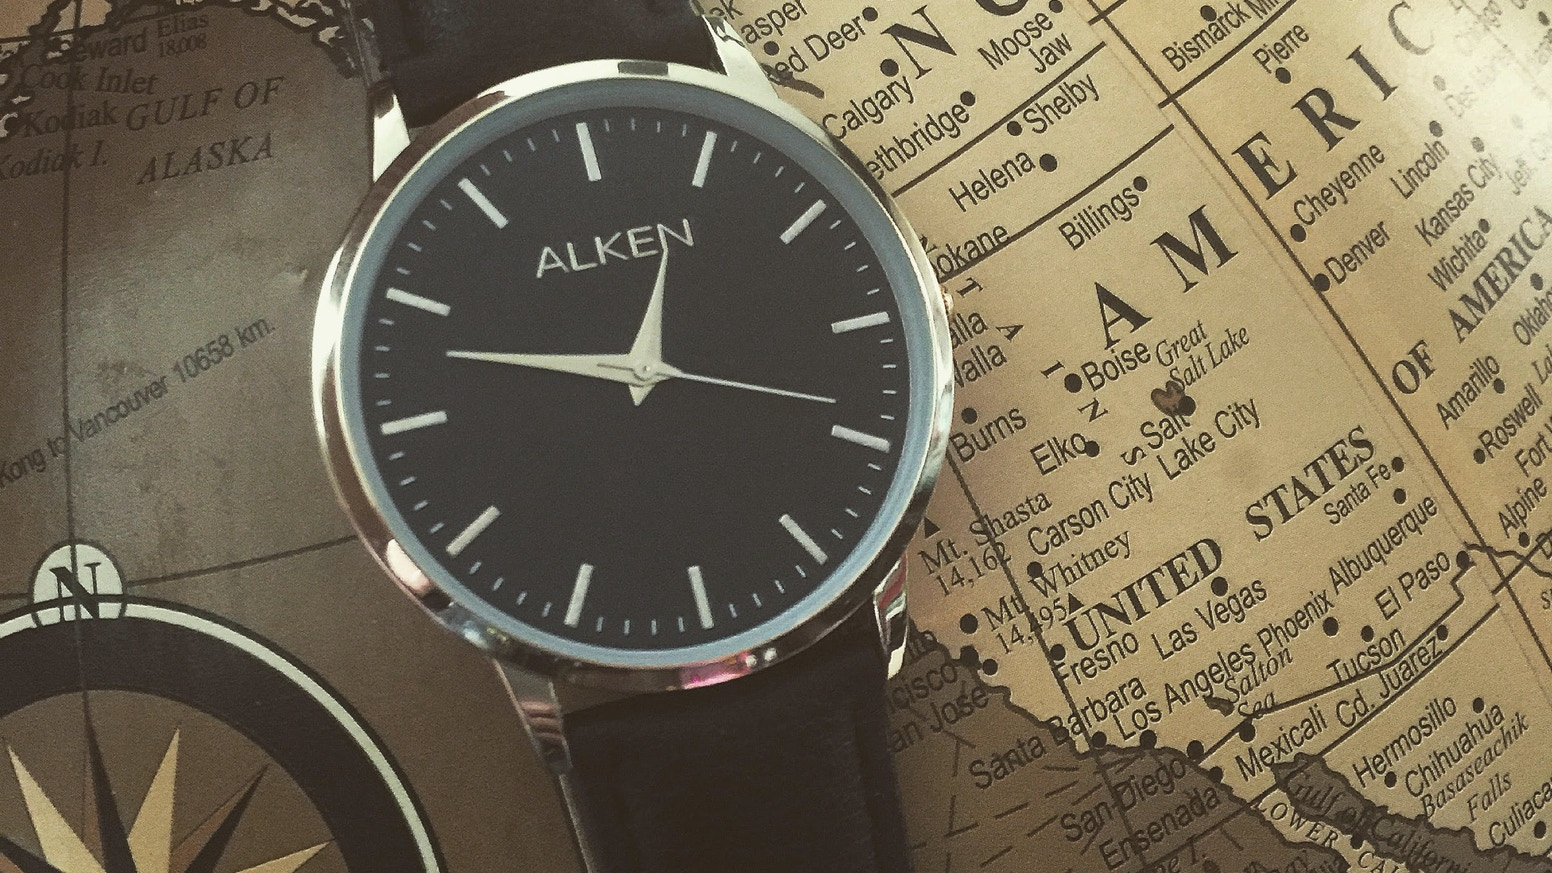 Alken Watch Company Modern Meets Minimalistic Design By Alken